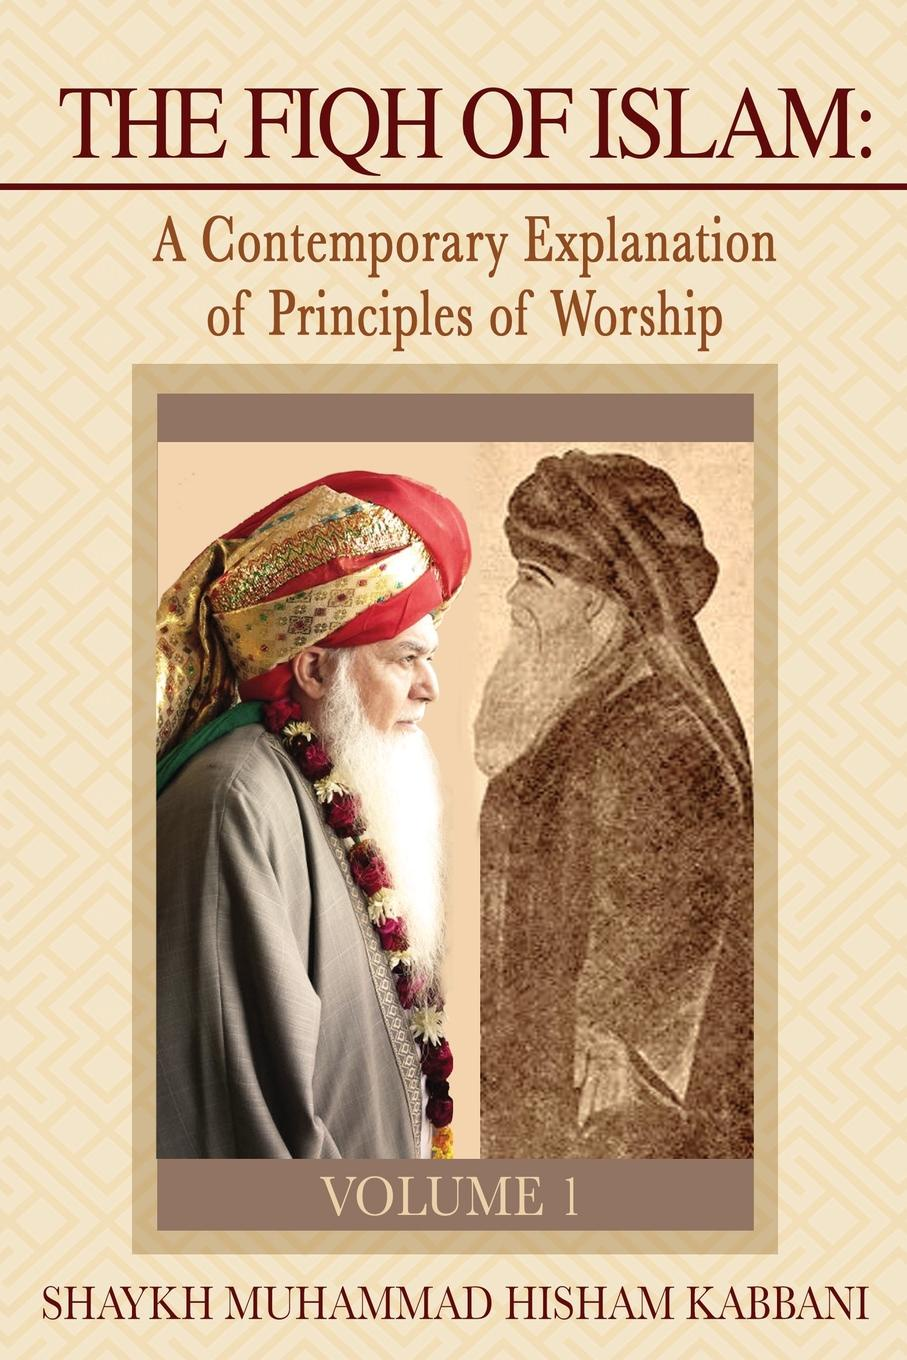 Shaykh Muhammad Hisham Kabbani The Fiqh of Islam. A Contemporary Explanation of Principles of Worship, Volume 1 недорго, оригинальная цена